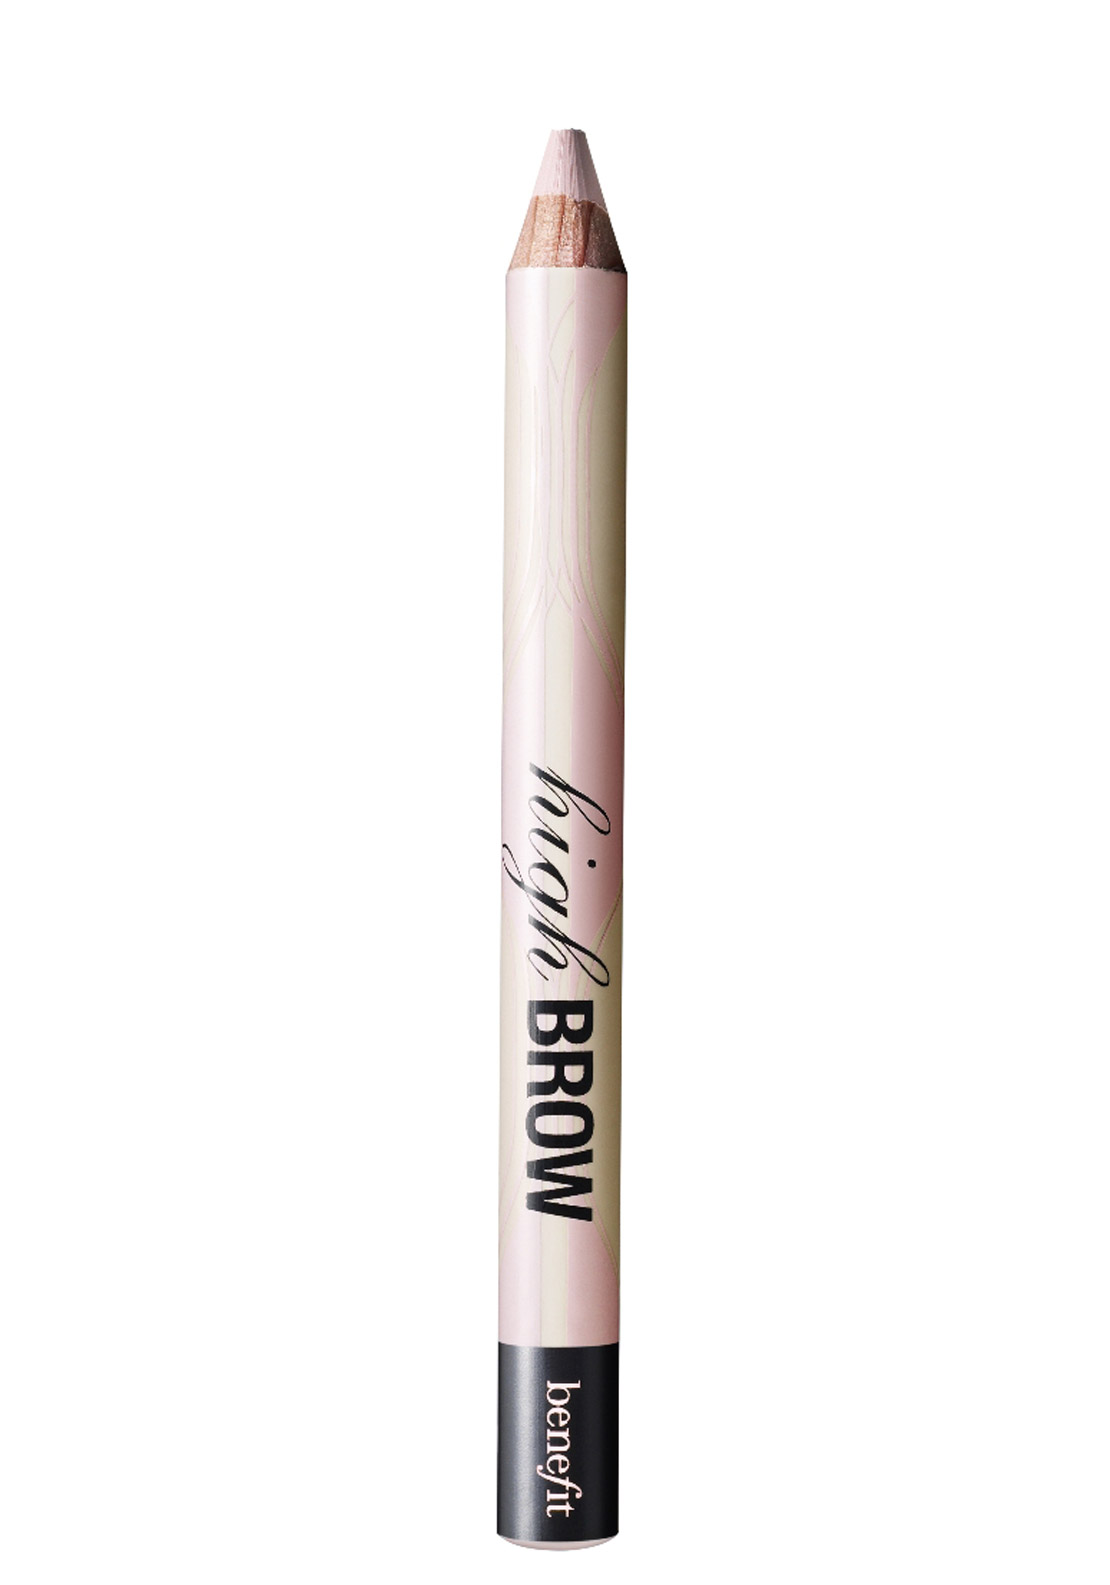 Benefit High Brow Highlighter Pencil, Linen Pink